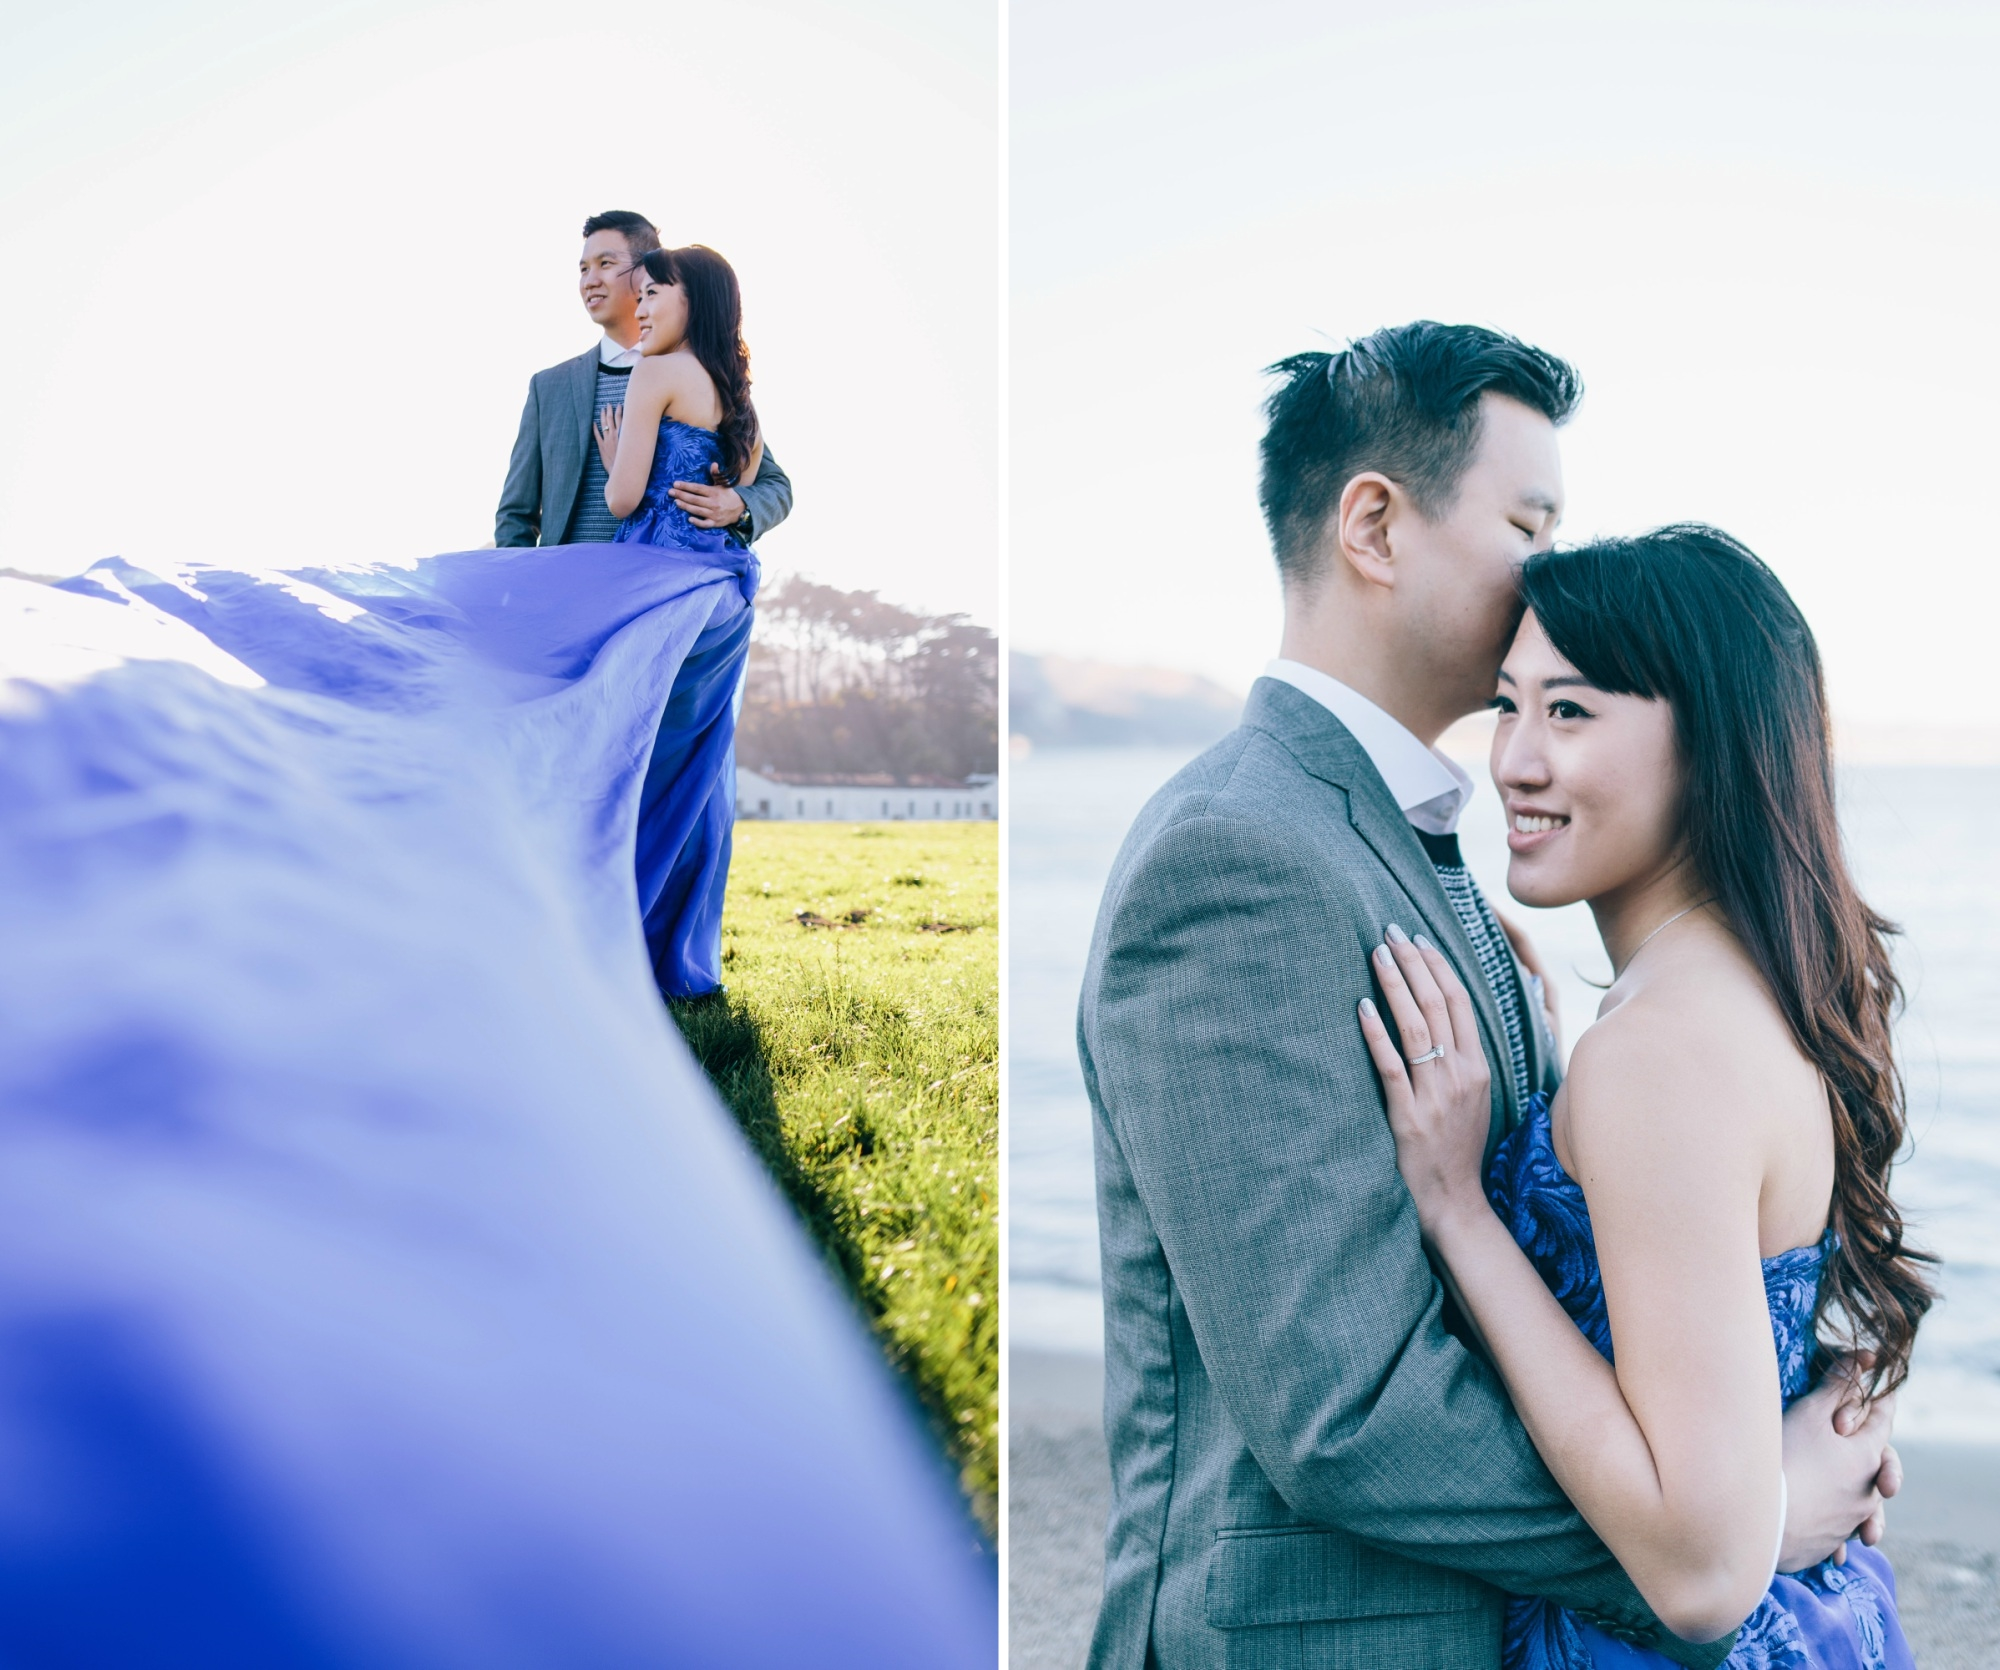 Pre-Wedding Photos in San Francisco by JBJ Pictures Pre-Wedding Photographer, Engagement Session and Wedding Photography in Napa, Sonoma, SF Bay Area (9).jpg